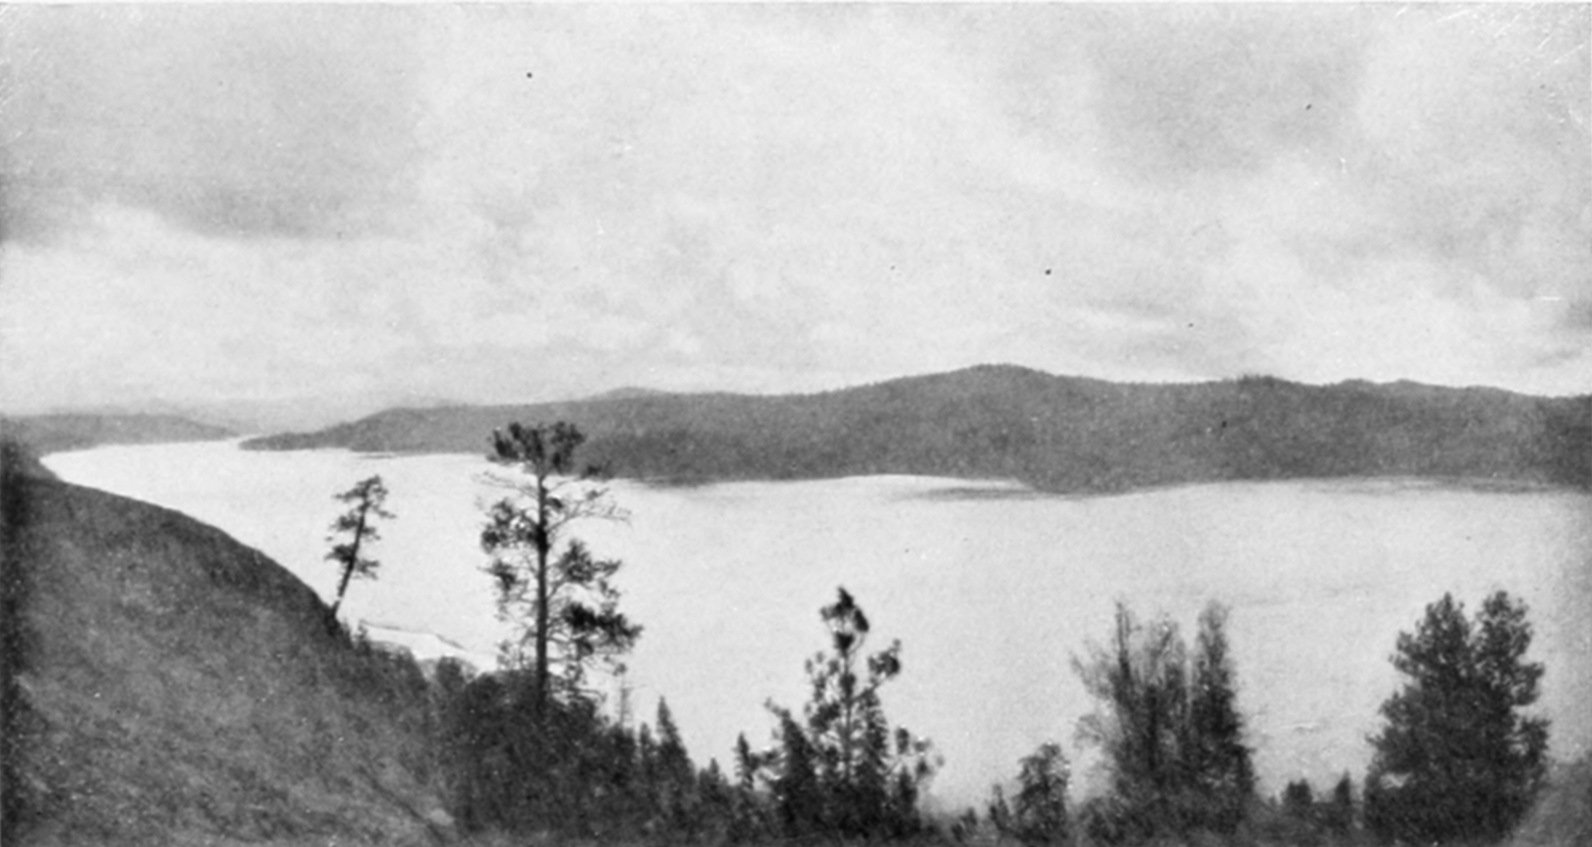 The Columbia River Its History, Its Myths, Its Scenery, Its Commerce p 381 (bottom).png